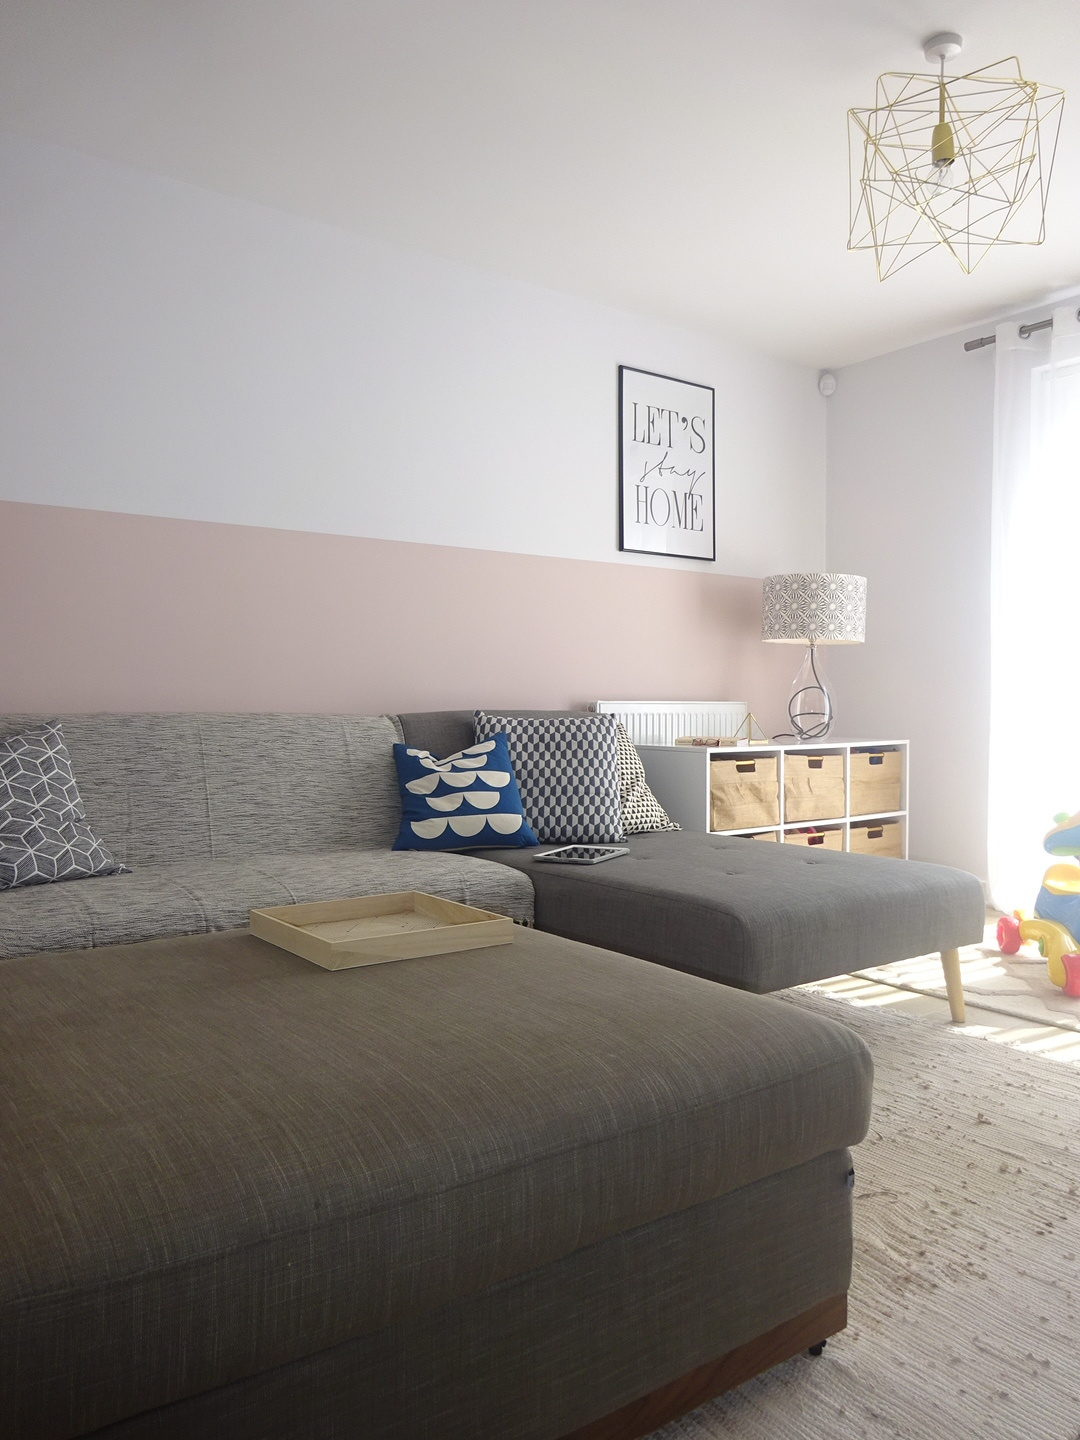 The half white half blush wall has been a hit, making the room look taller and making it a cosy and peaceful place.